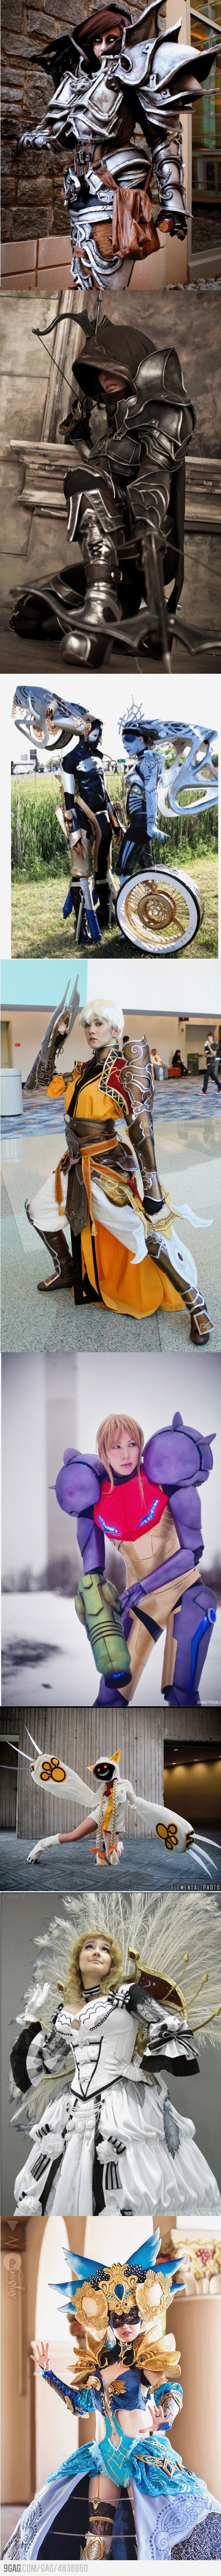 Girls can make awesome cosplay without being